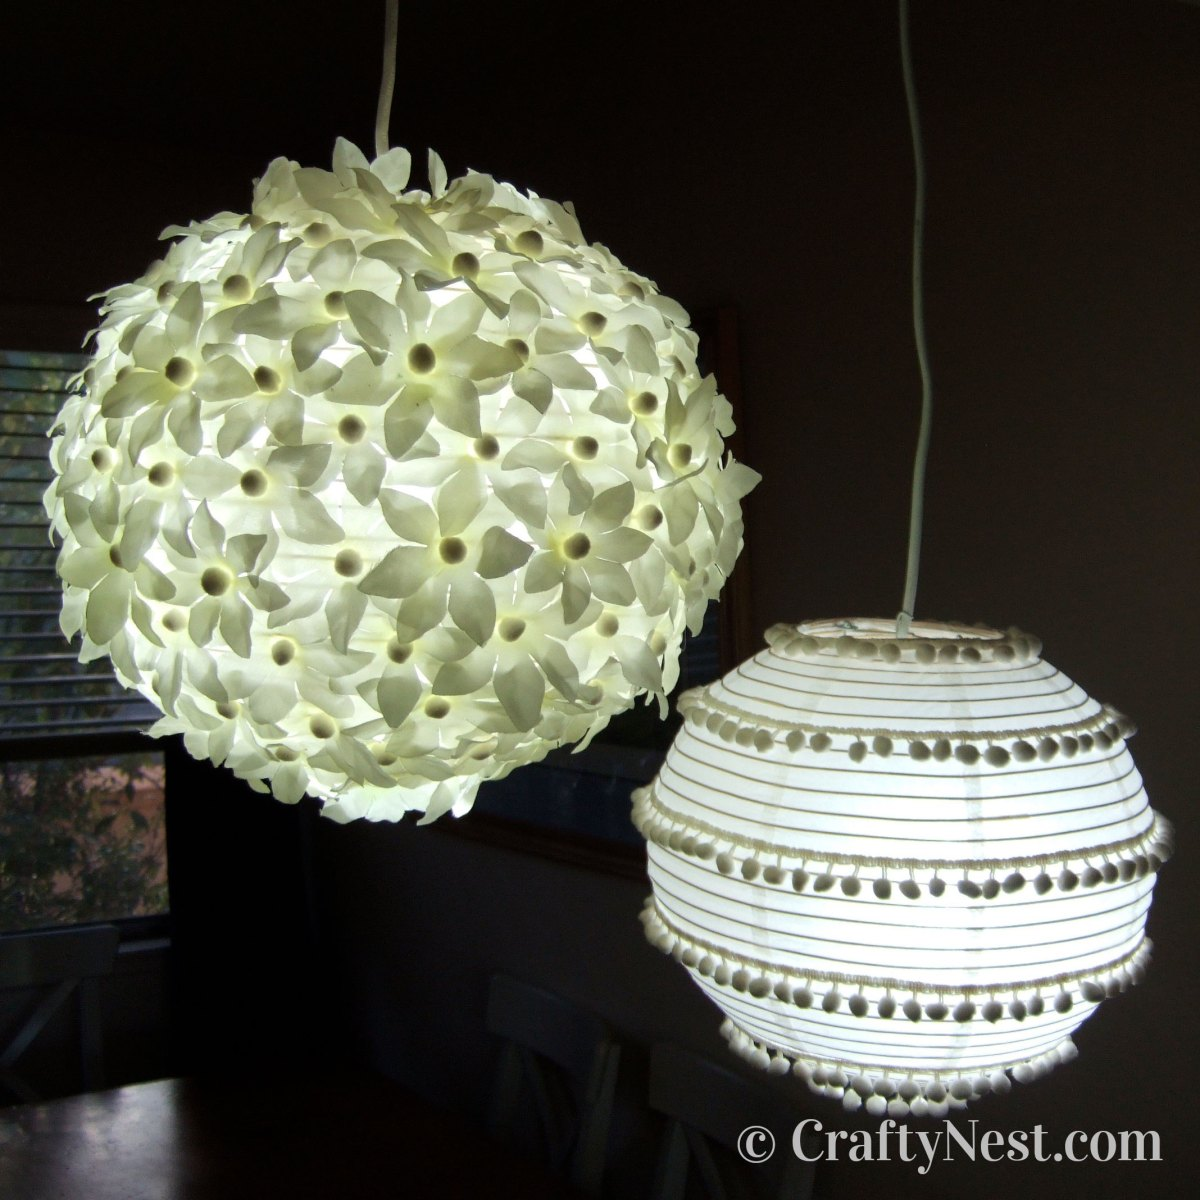 Two decorated paper lanterns at night, photo